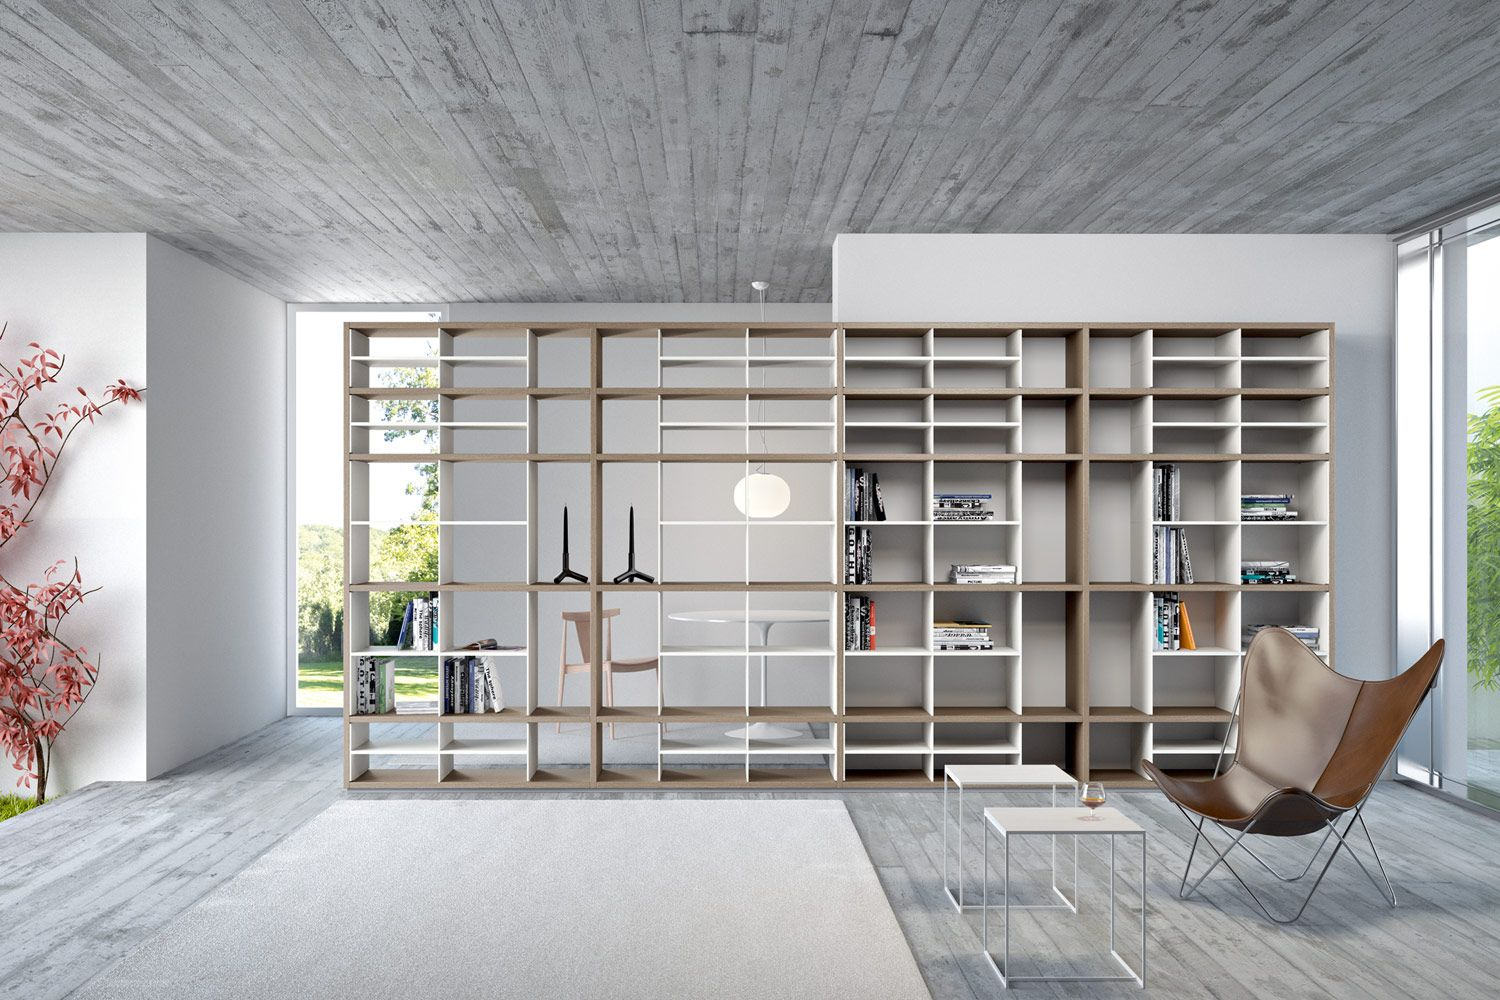 Fortepiano Bookshelves And Multimedia Molteni C Interiors  # Giellesse Muebles